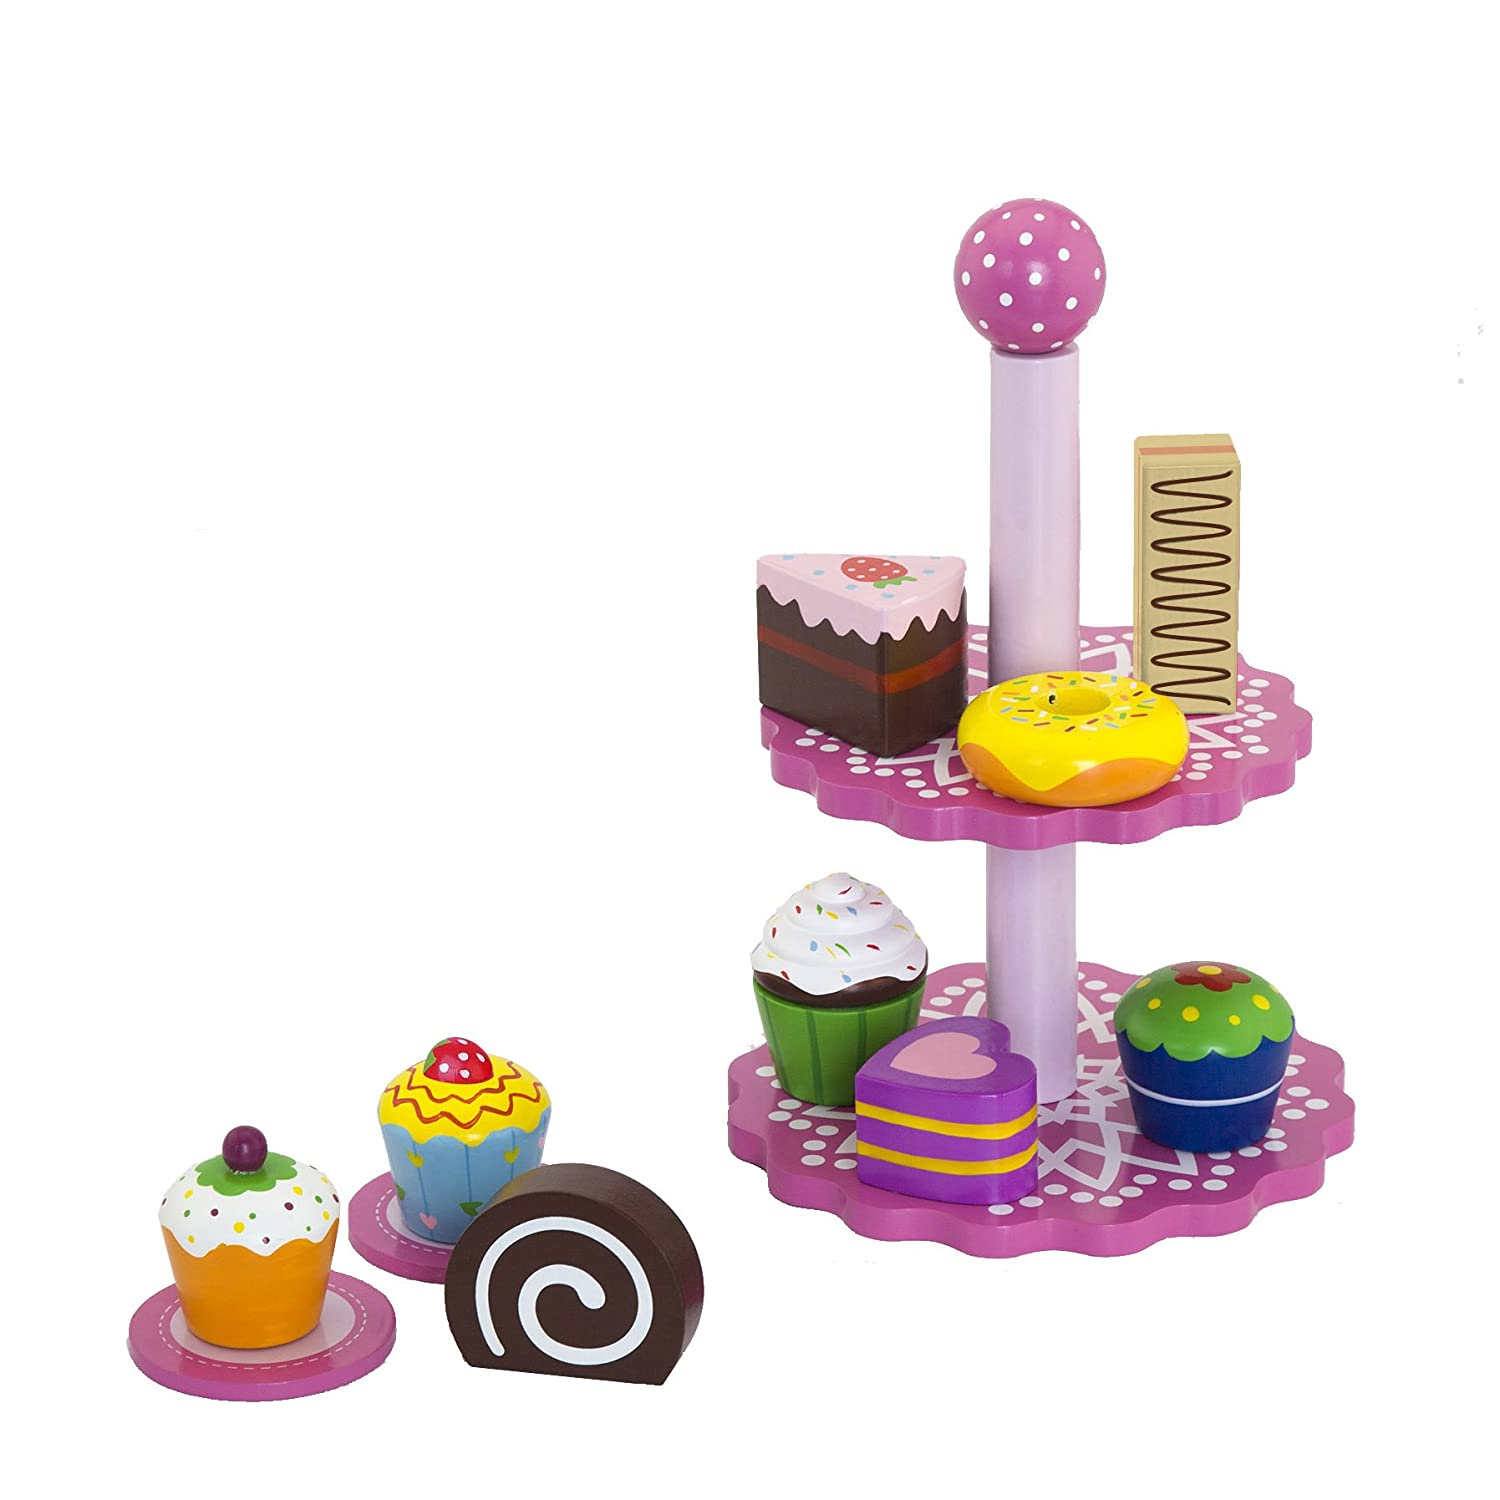 Vortigern #51024 - Wooden Toy Tea Party Set of Cupcakes with Pink Cake Stand and Two Plates V51024stand